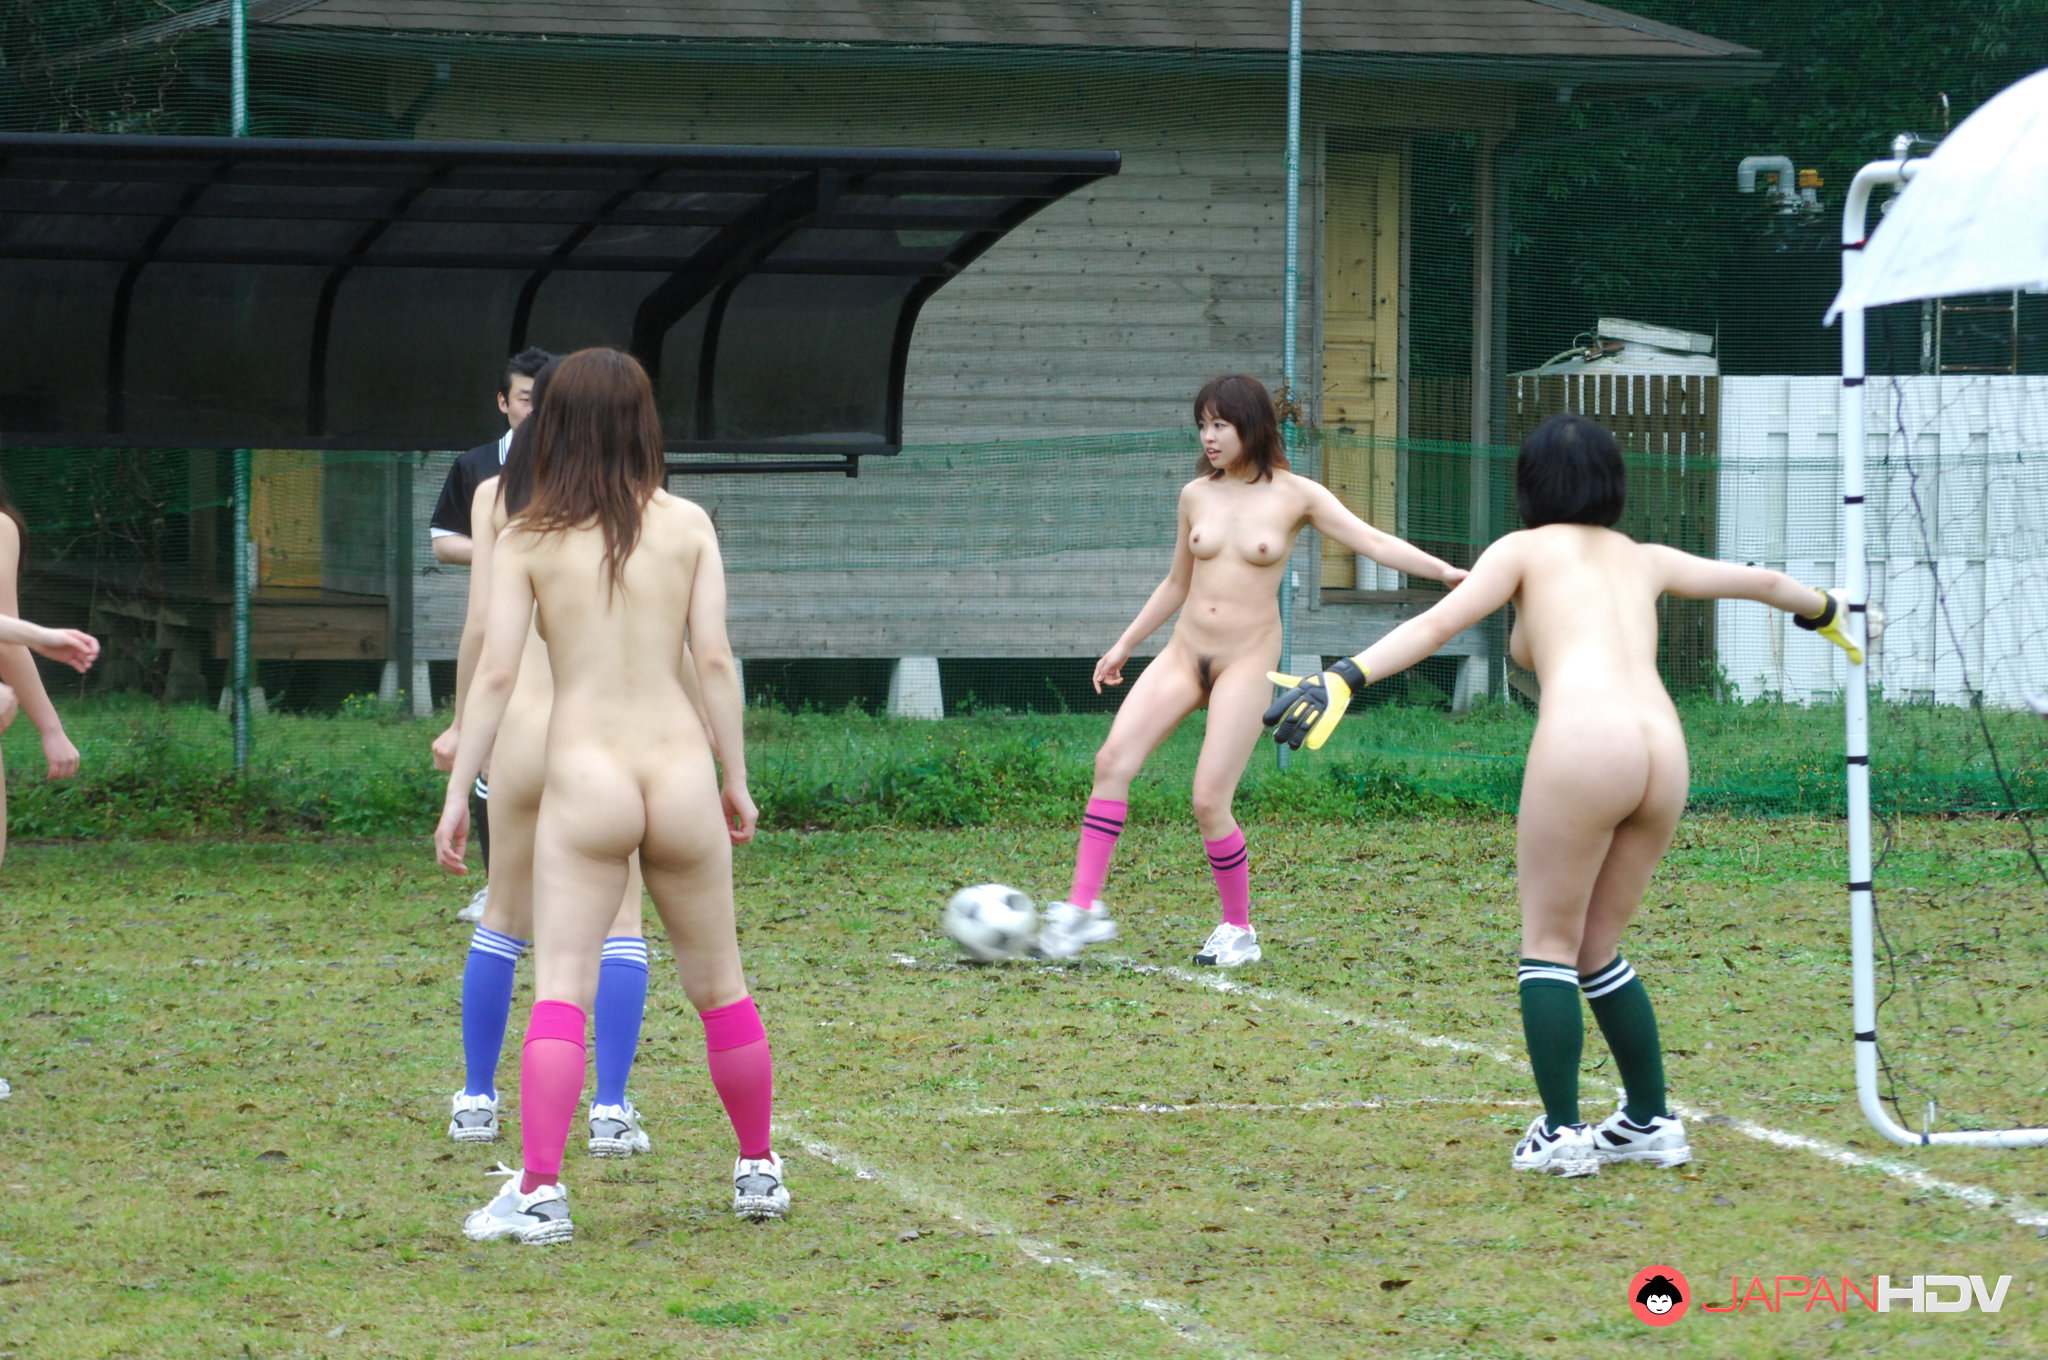 women playing soccer naked